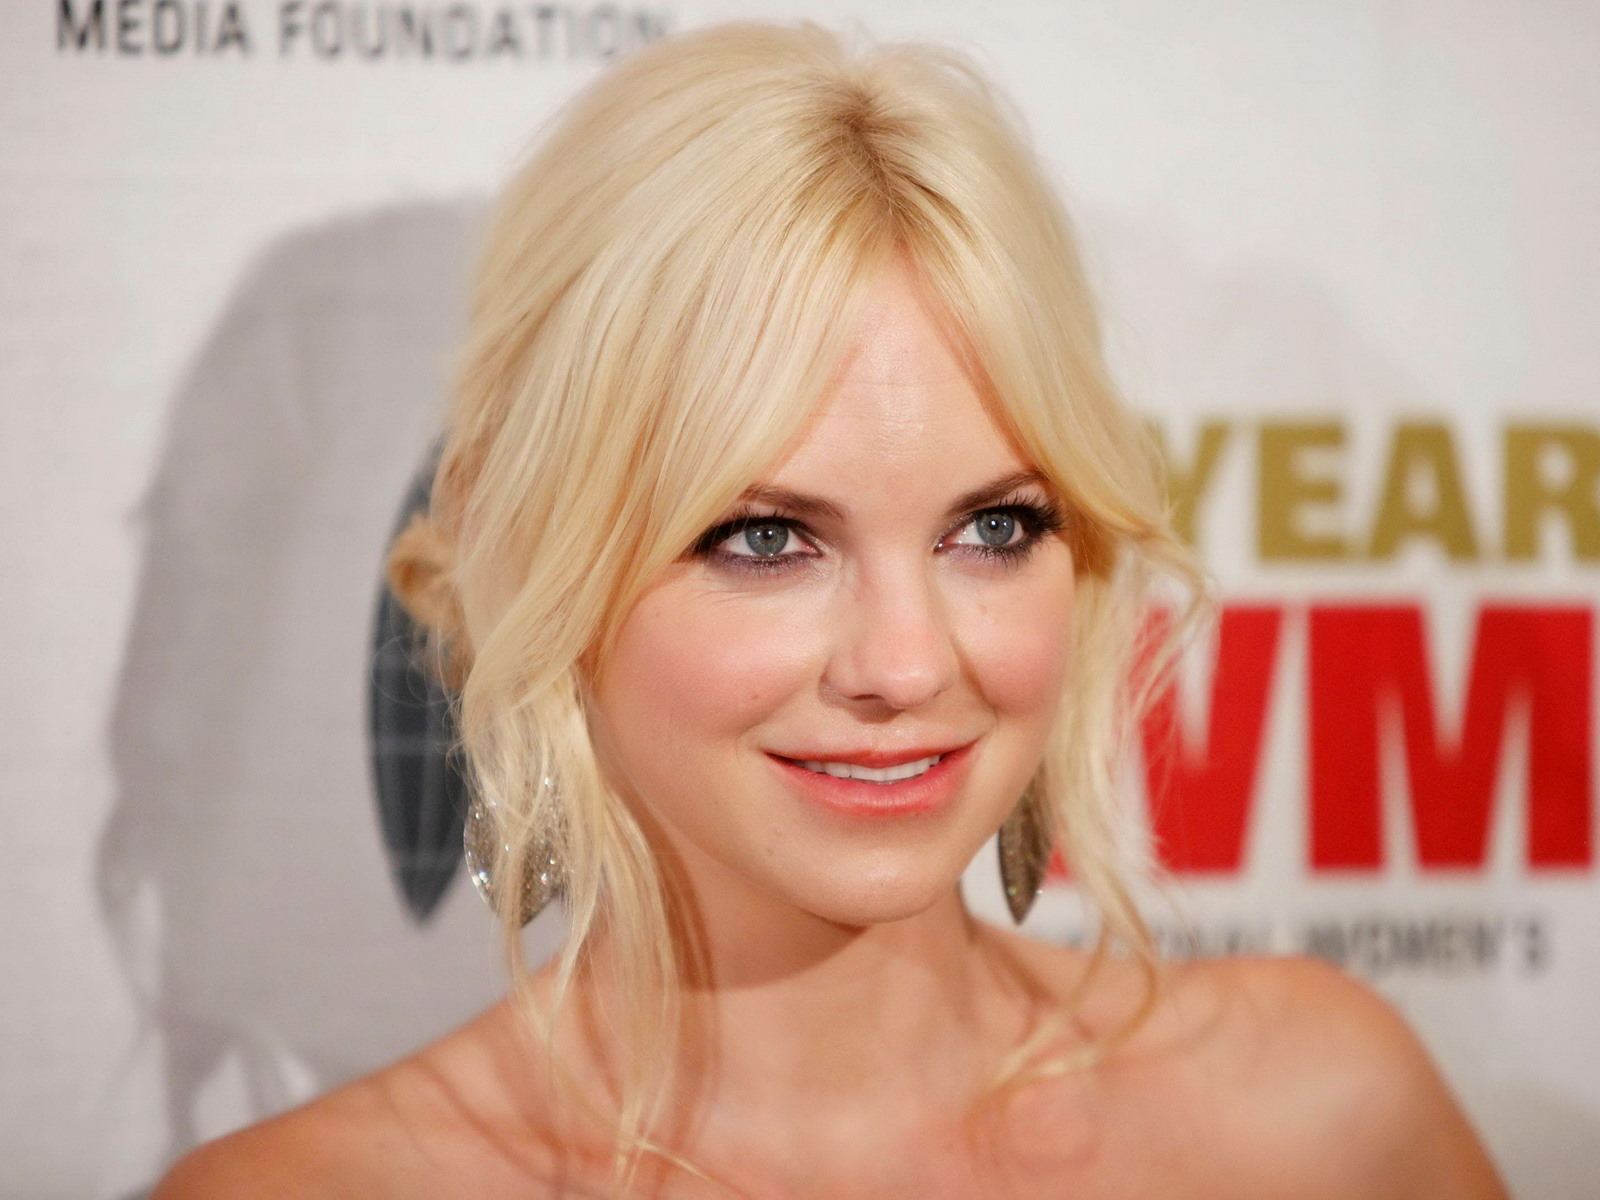 Anna Faris Modelling Wallpaper Hd Free Download